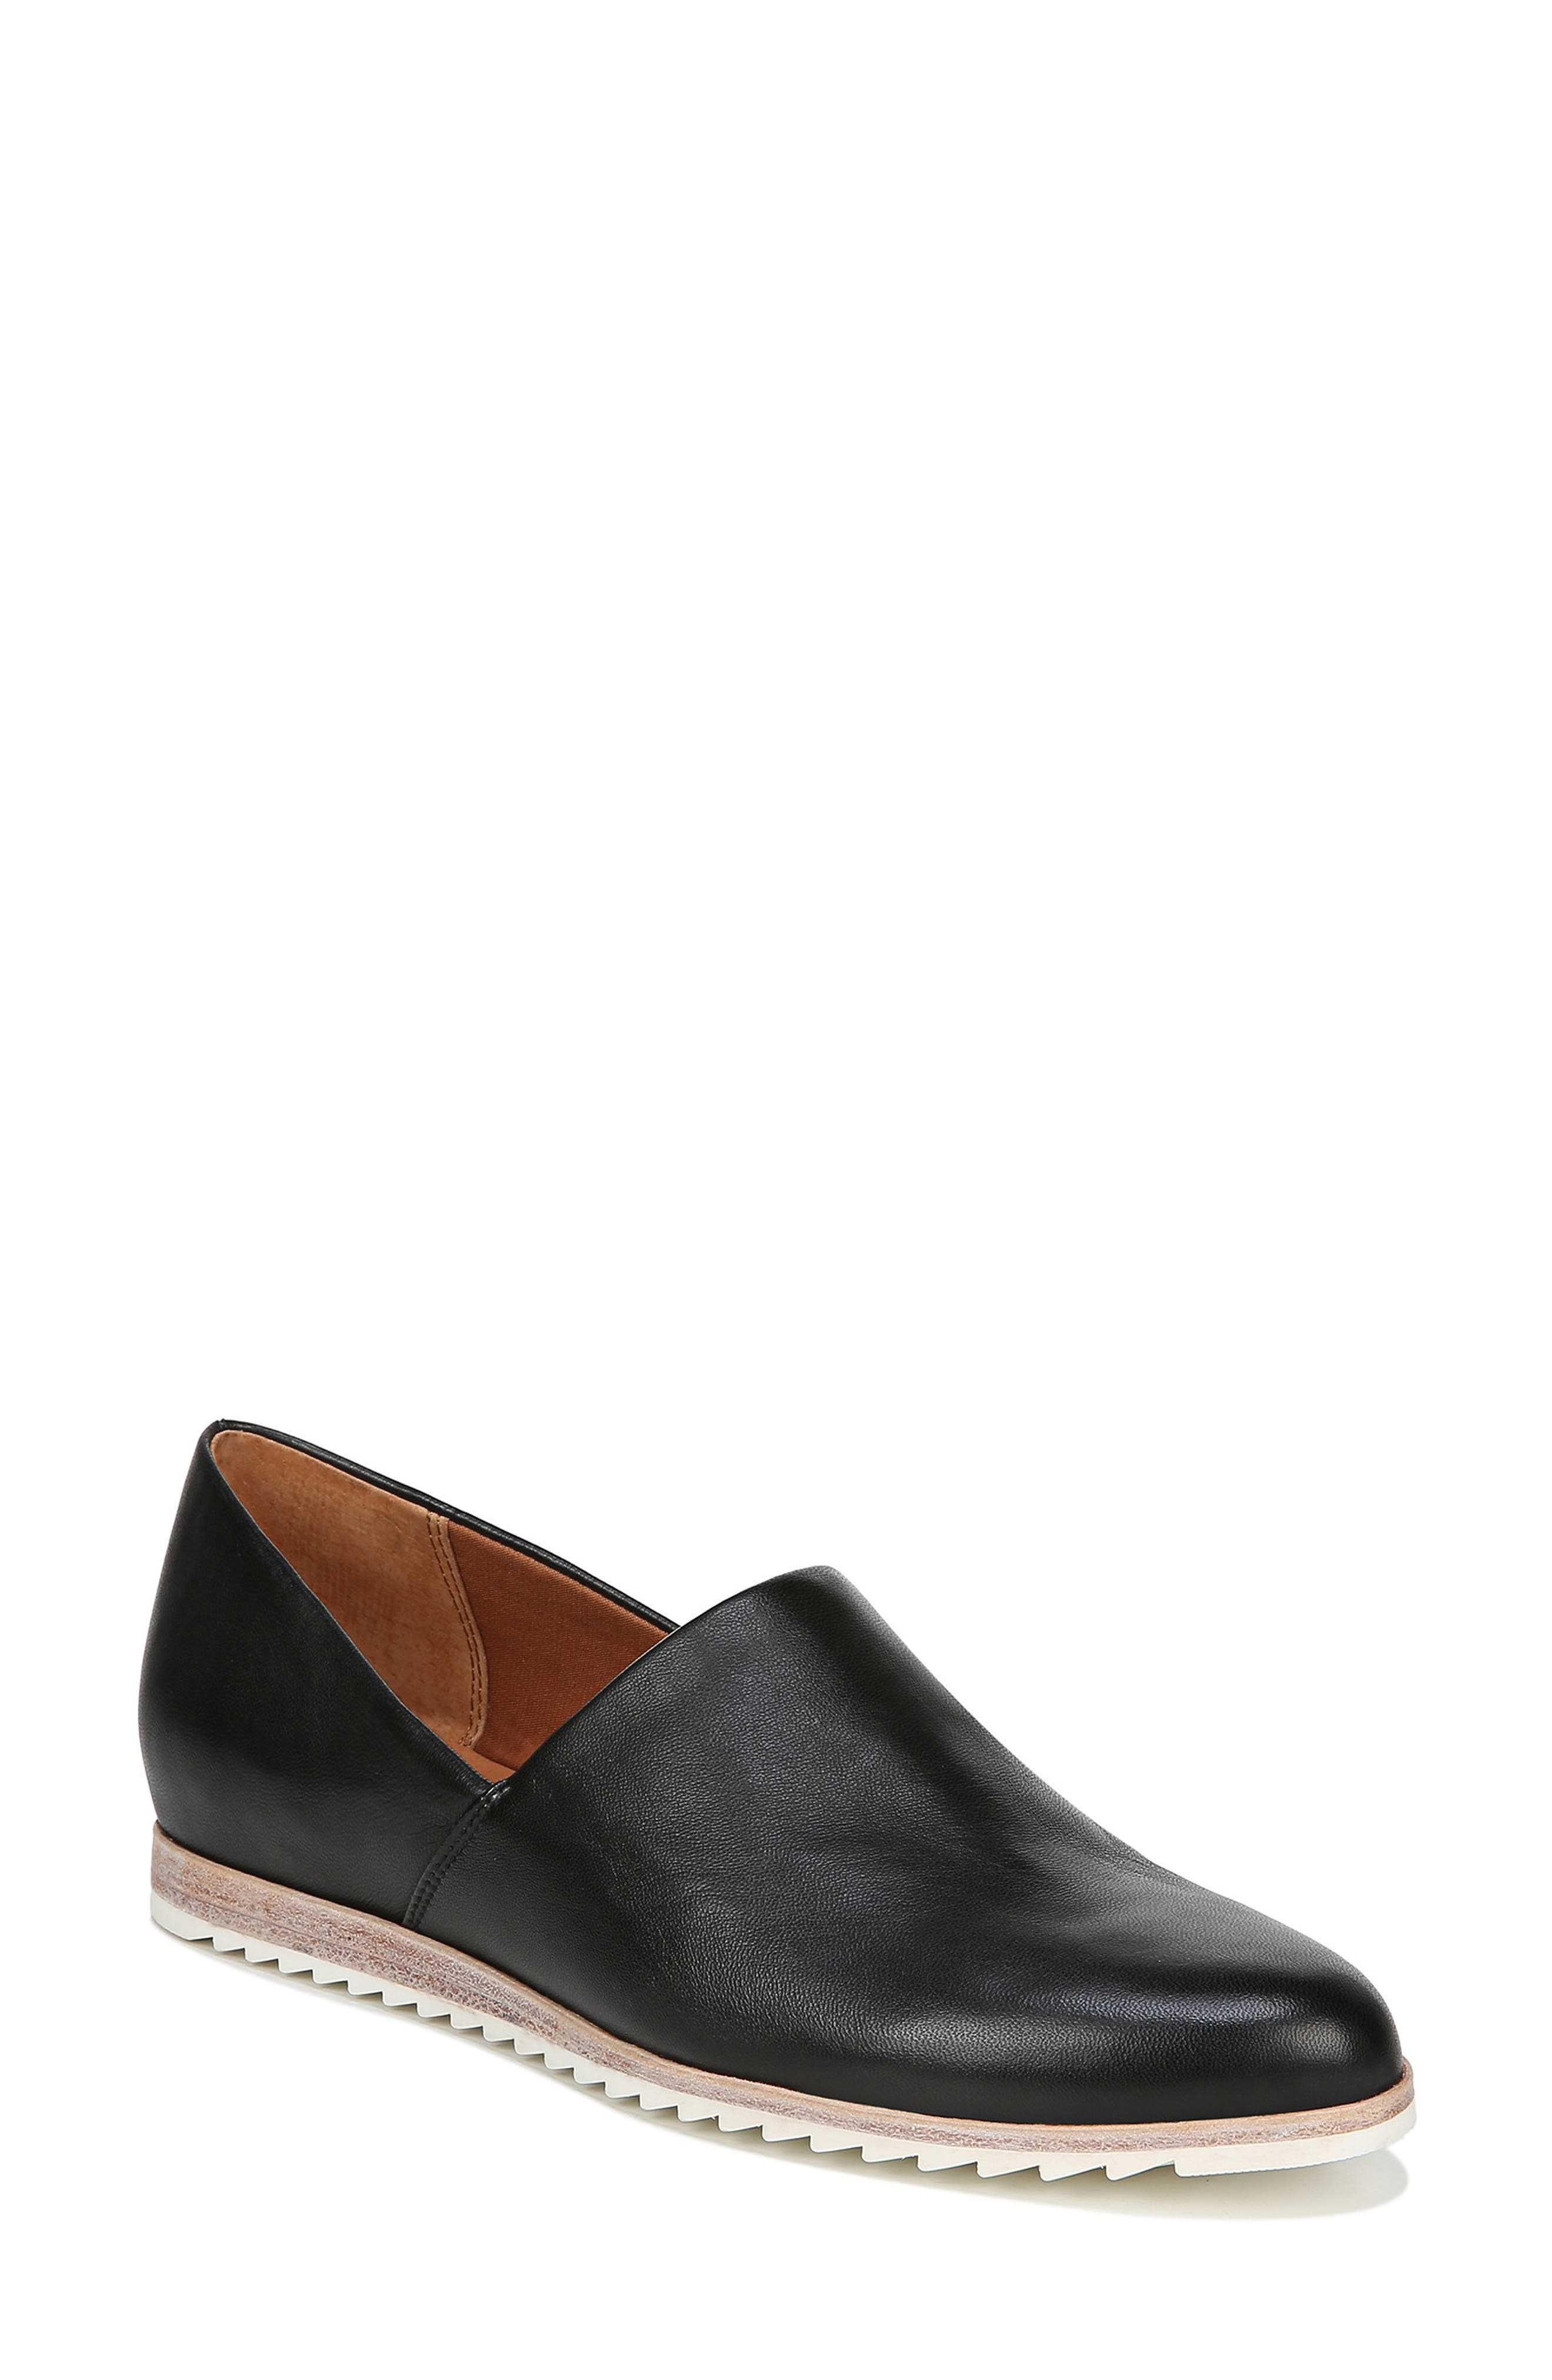 Image of SARTO BY FRANCO SARTO Flores Leather Flat